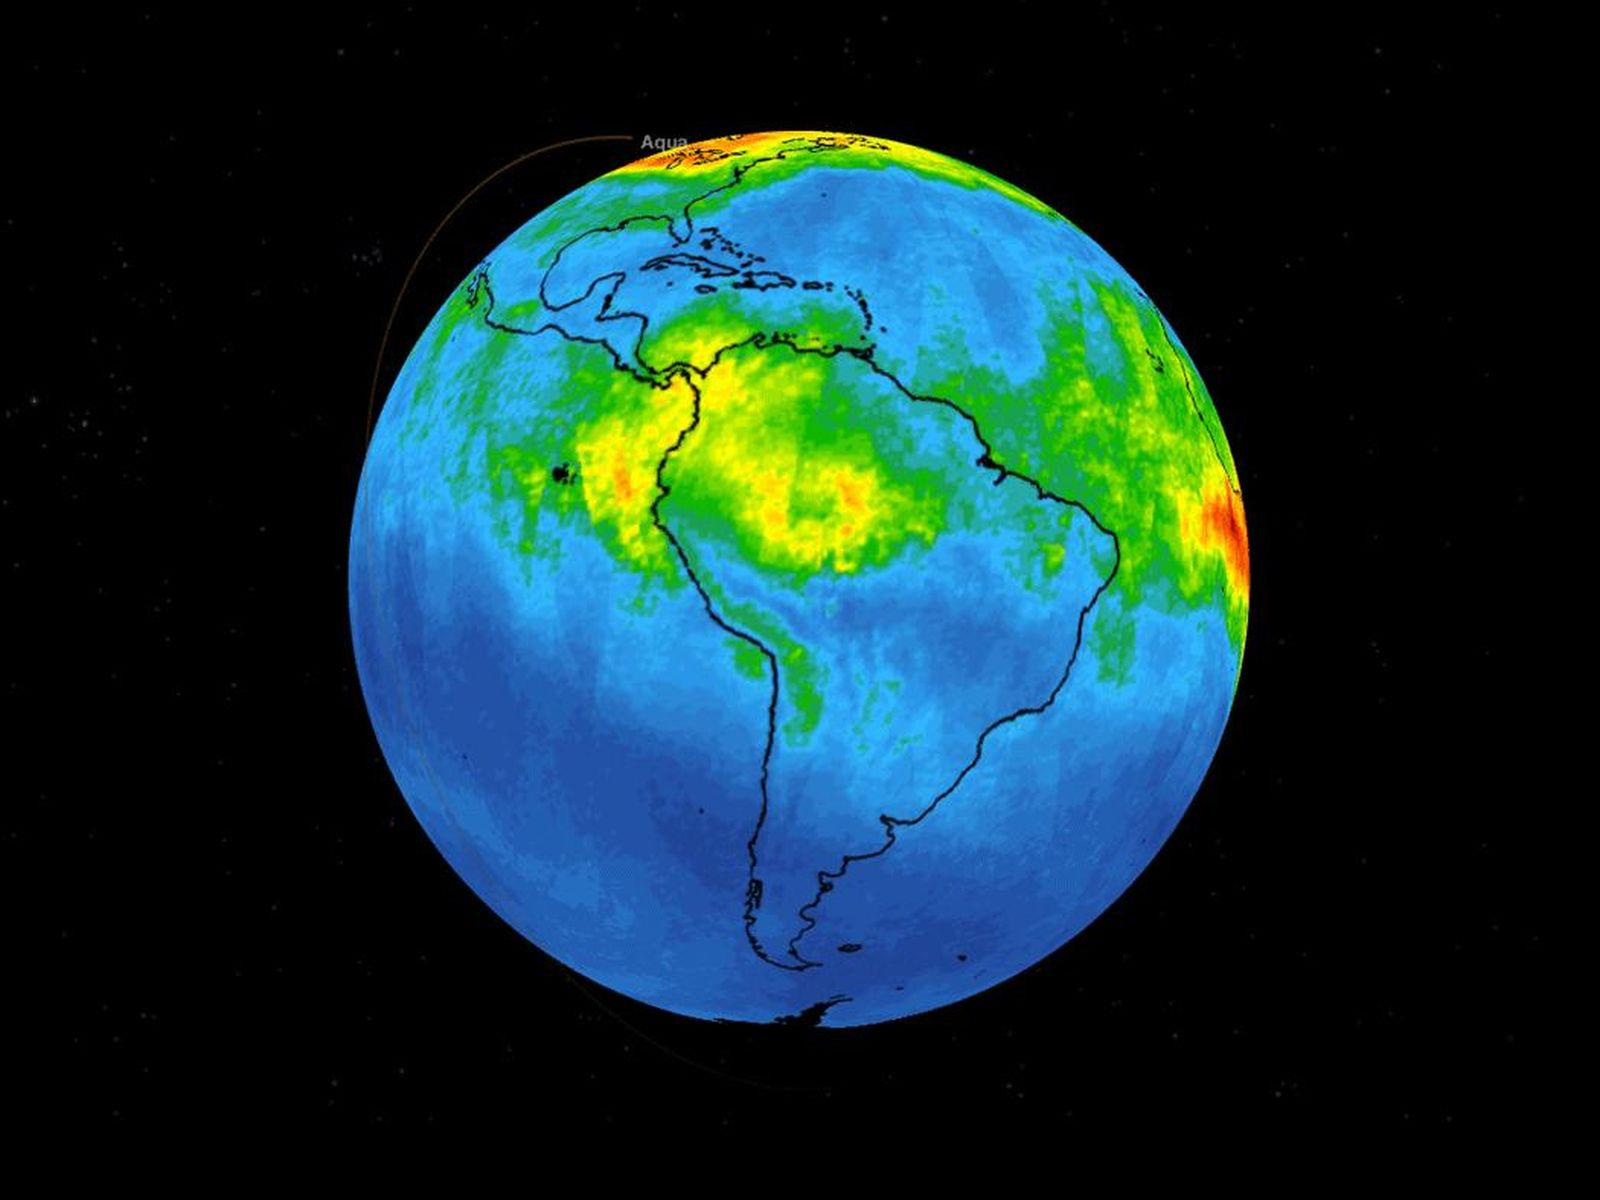 Space Images NASAs AIRS Maps Carbon Monoxide from Brazil Fires 1600x1200